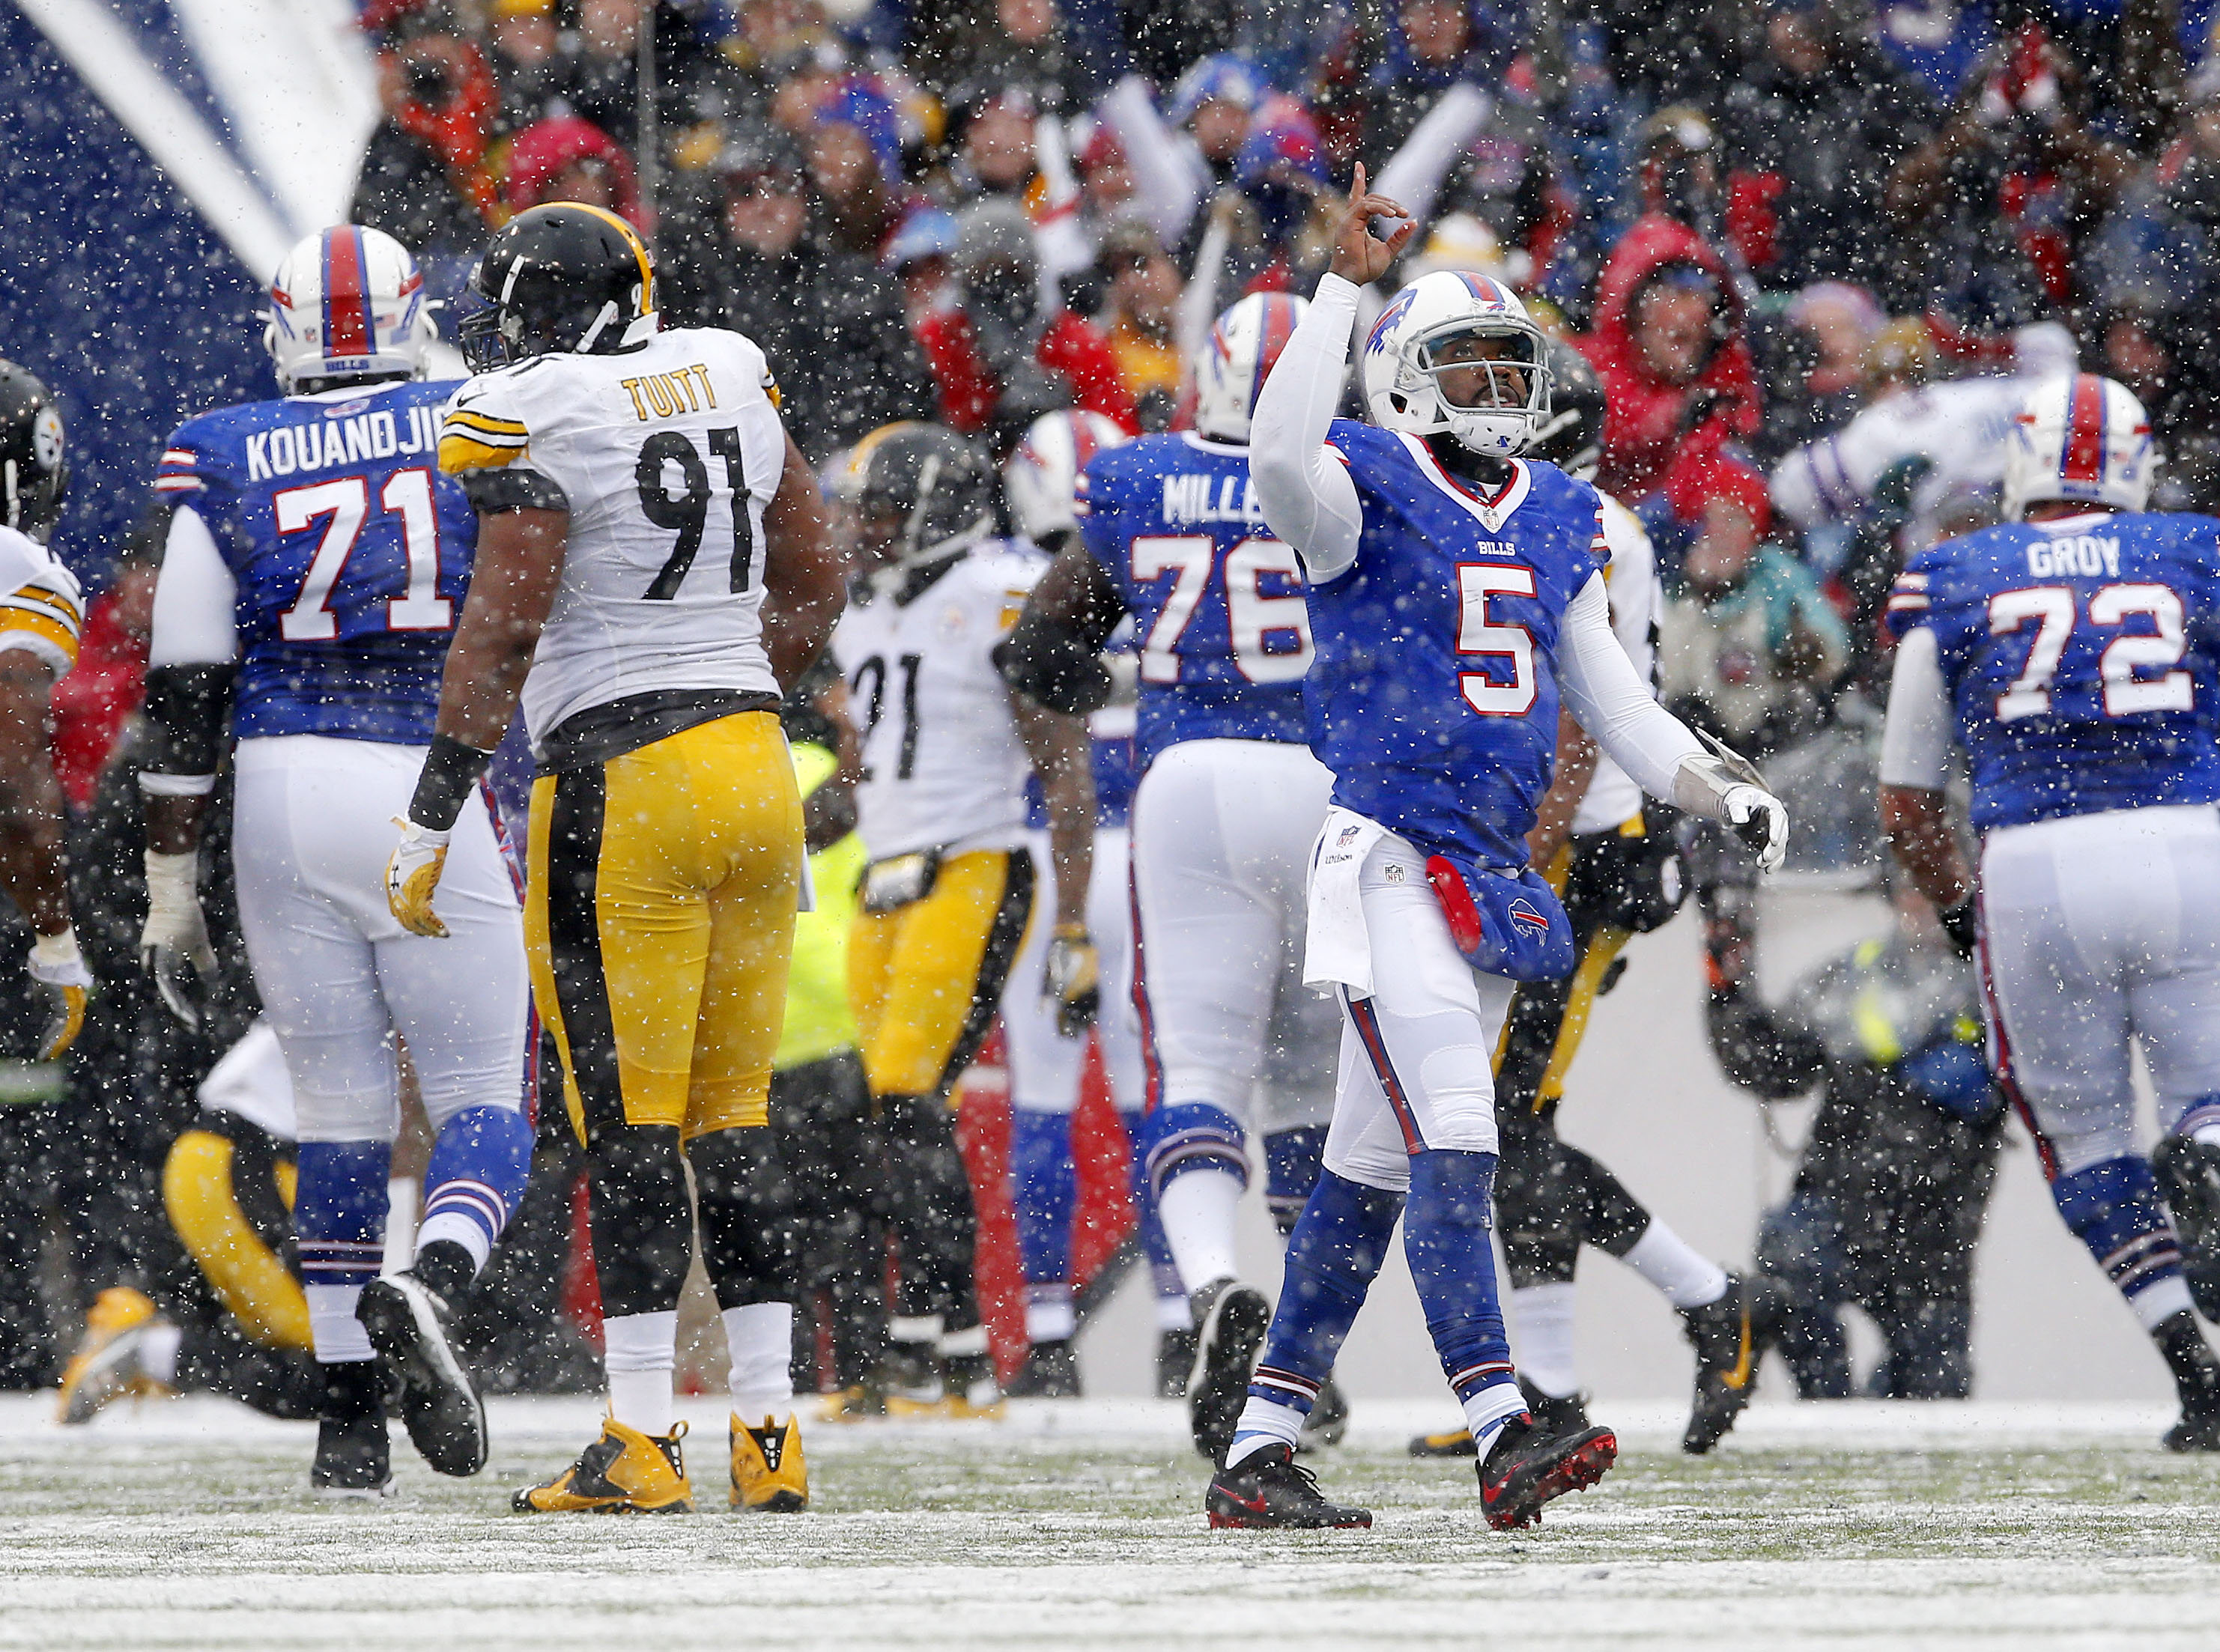 The Bills Tyrold Taylor celebrates throwing a touchdown pass to Sammy Watkins in the second quarter. (Mark Mulville/The Buffalo News)